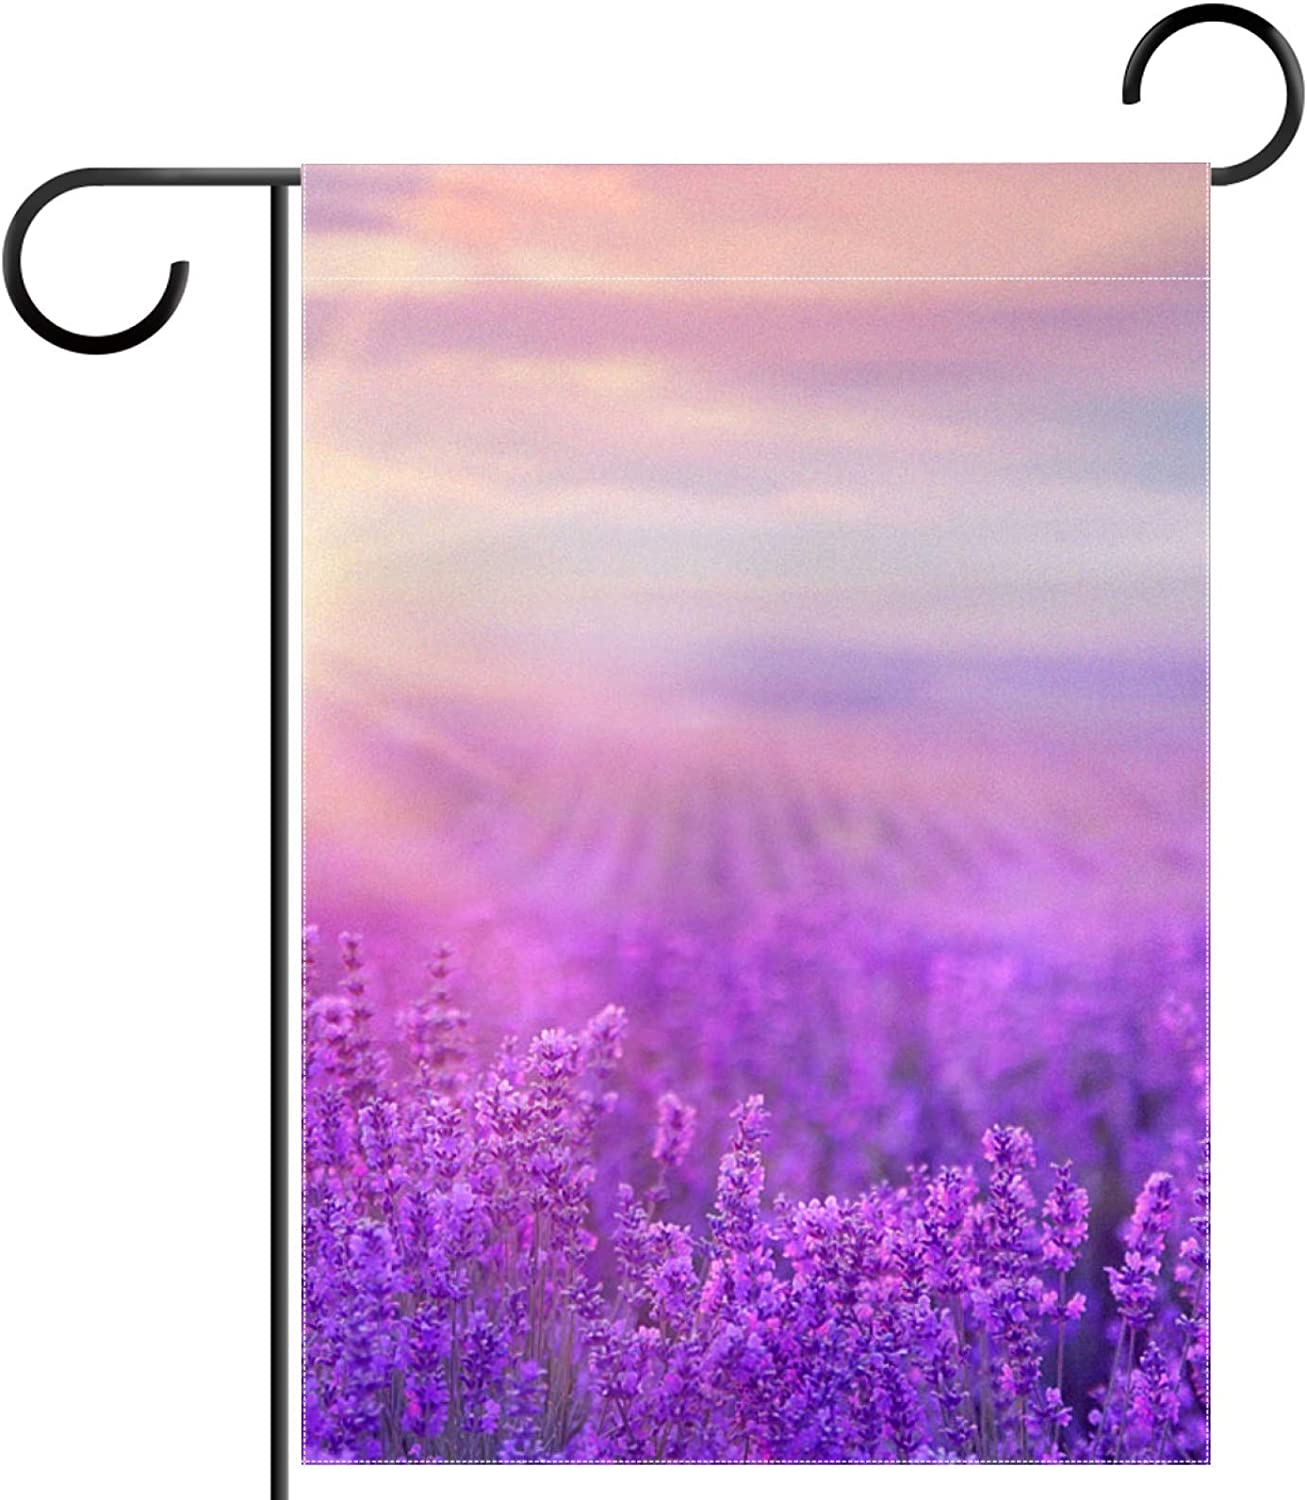 huiyueqiche Violet Lavender Field Garden Flag Inch x 12 OFFicial store Ranking TOP17 Doubl 18